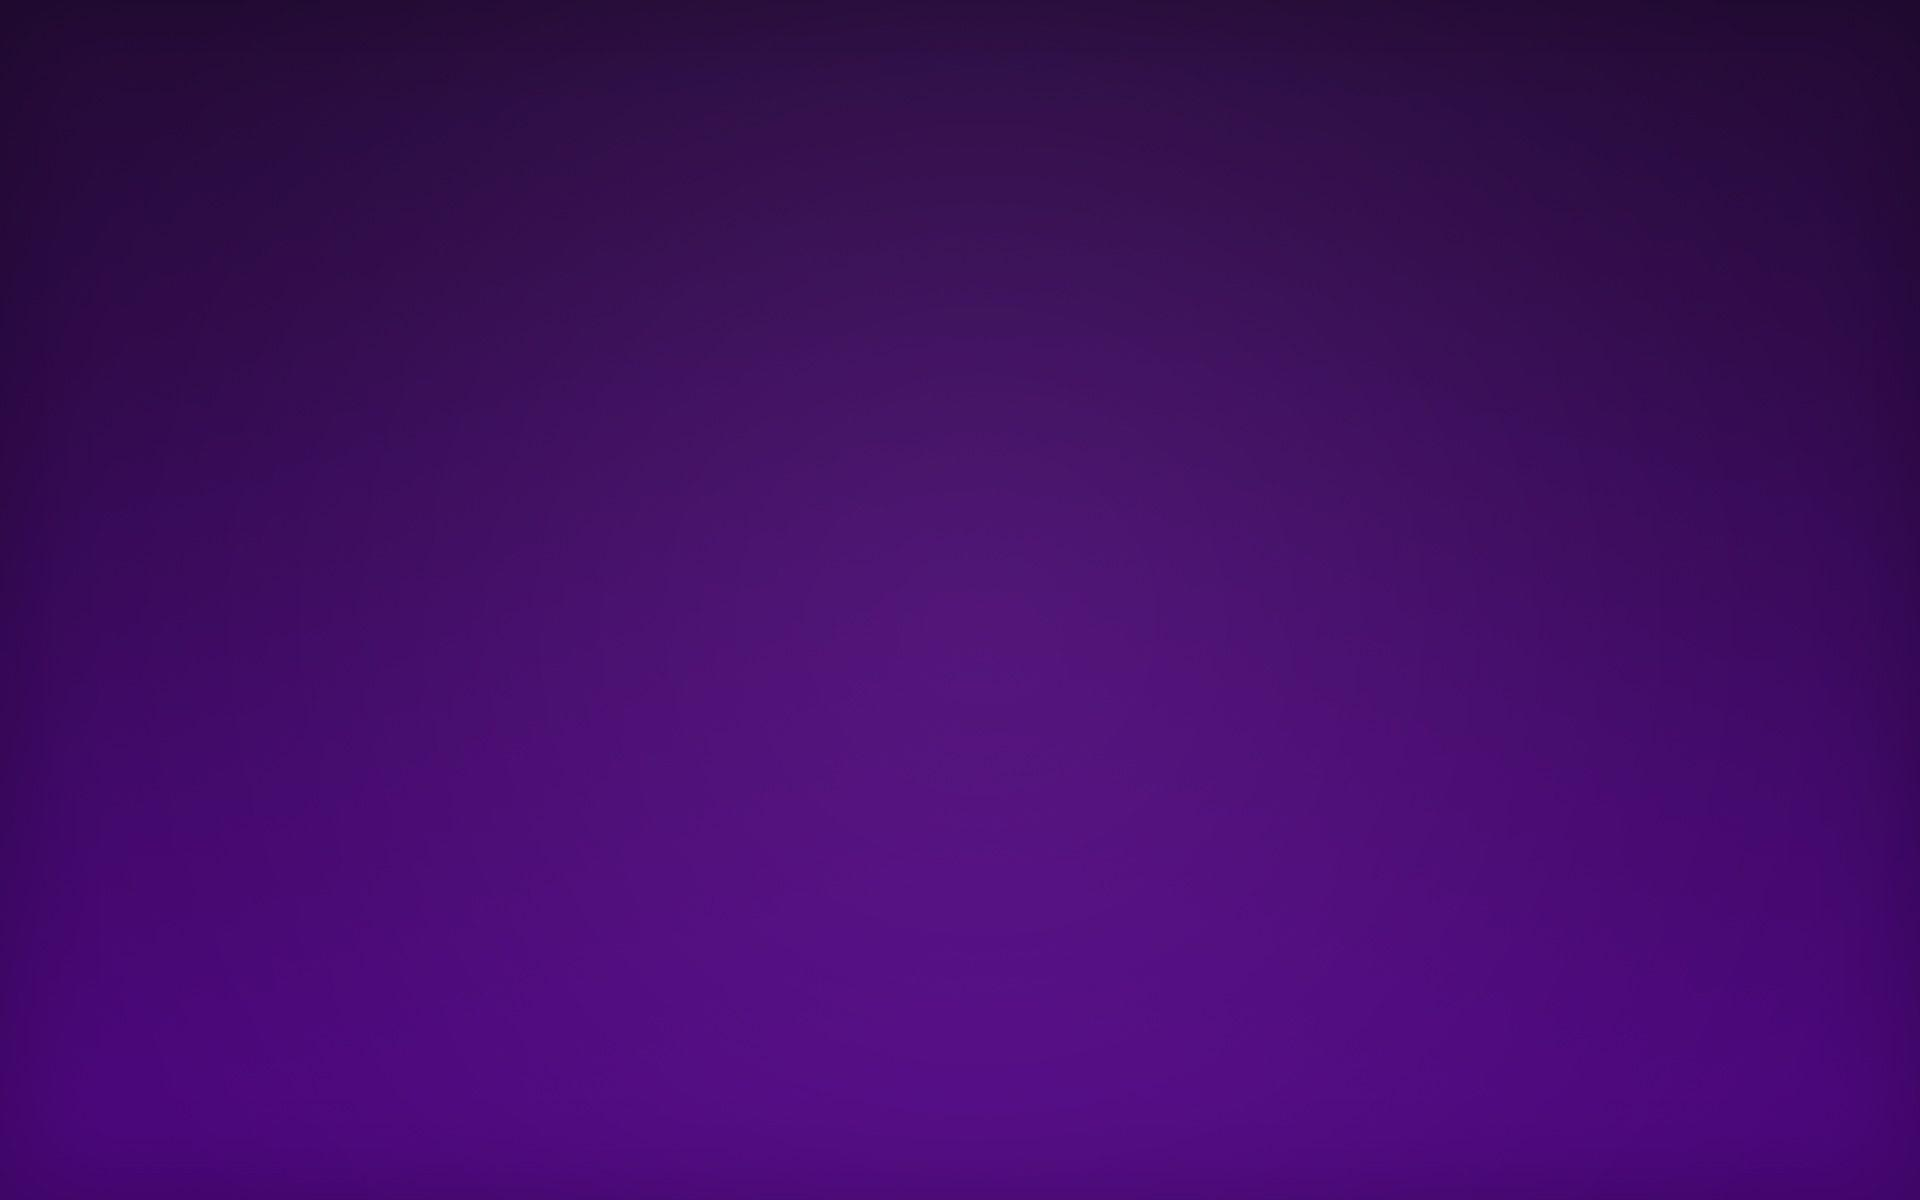 Http Wallpapercave Com Purple Wallpaper For Computer